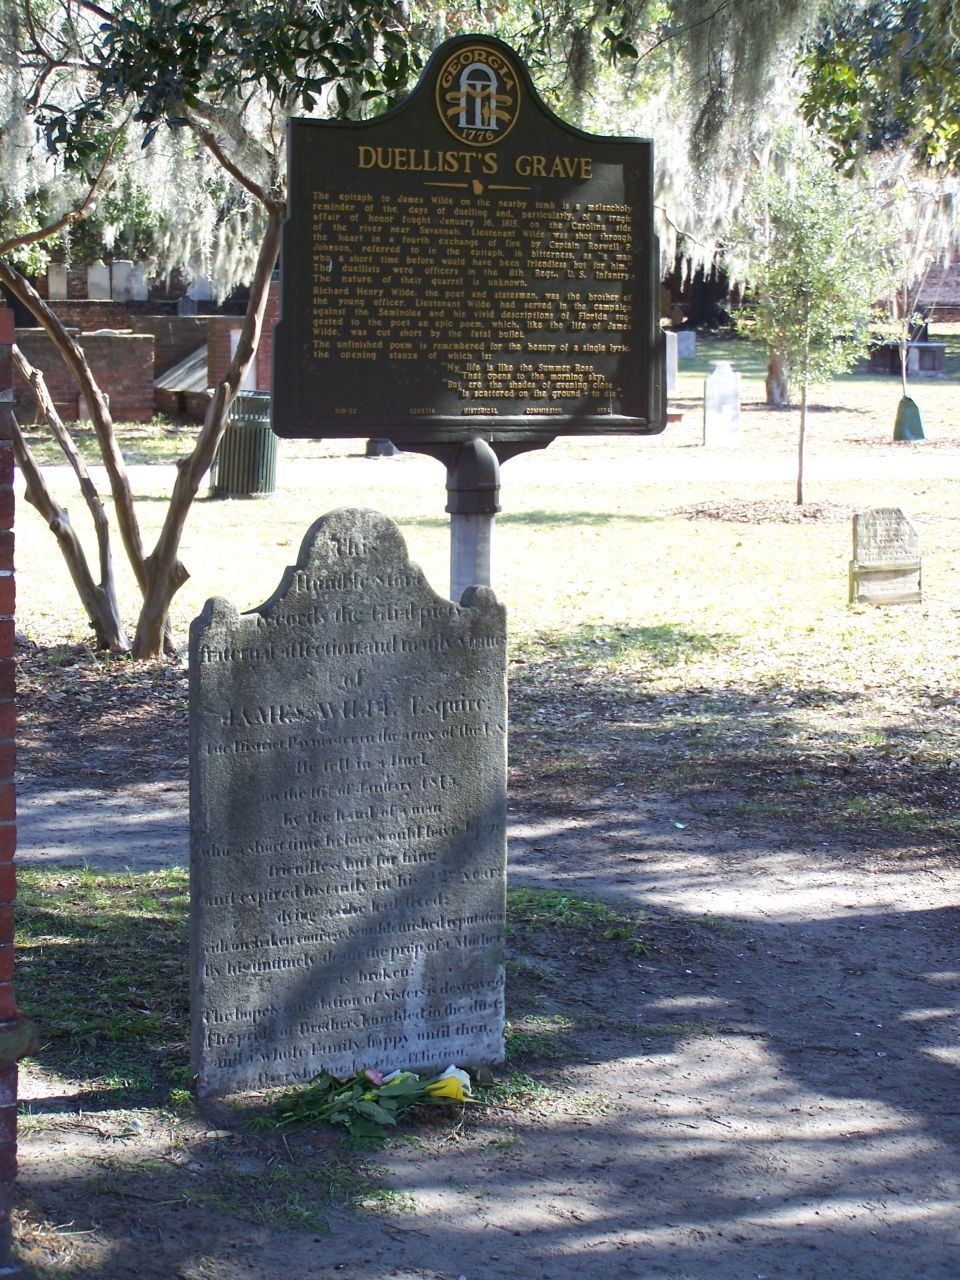 Colonial Park , Headstone for Lieutenant Wilde near the Duellist